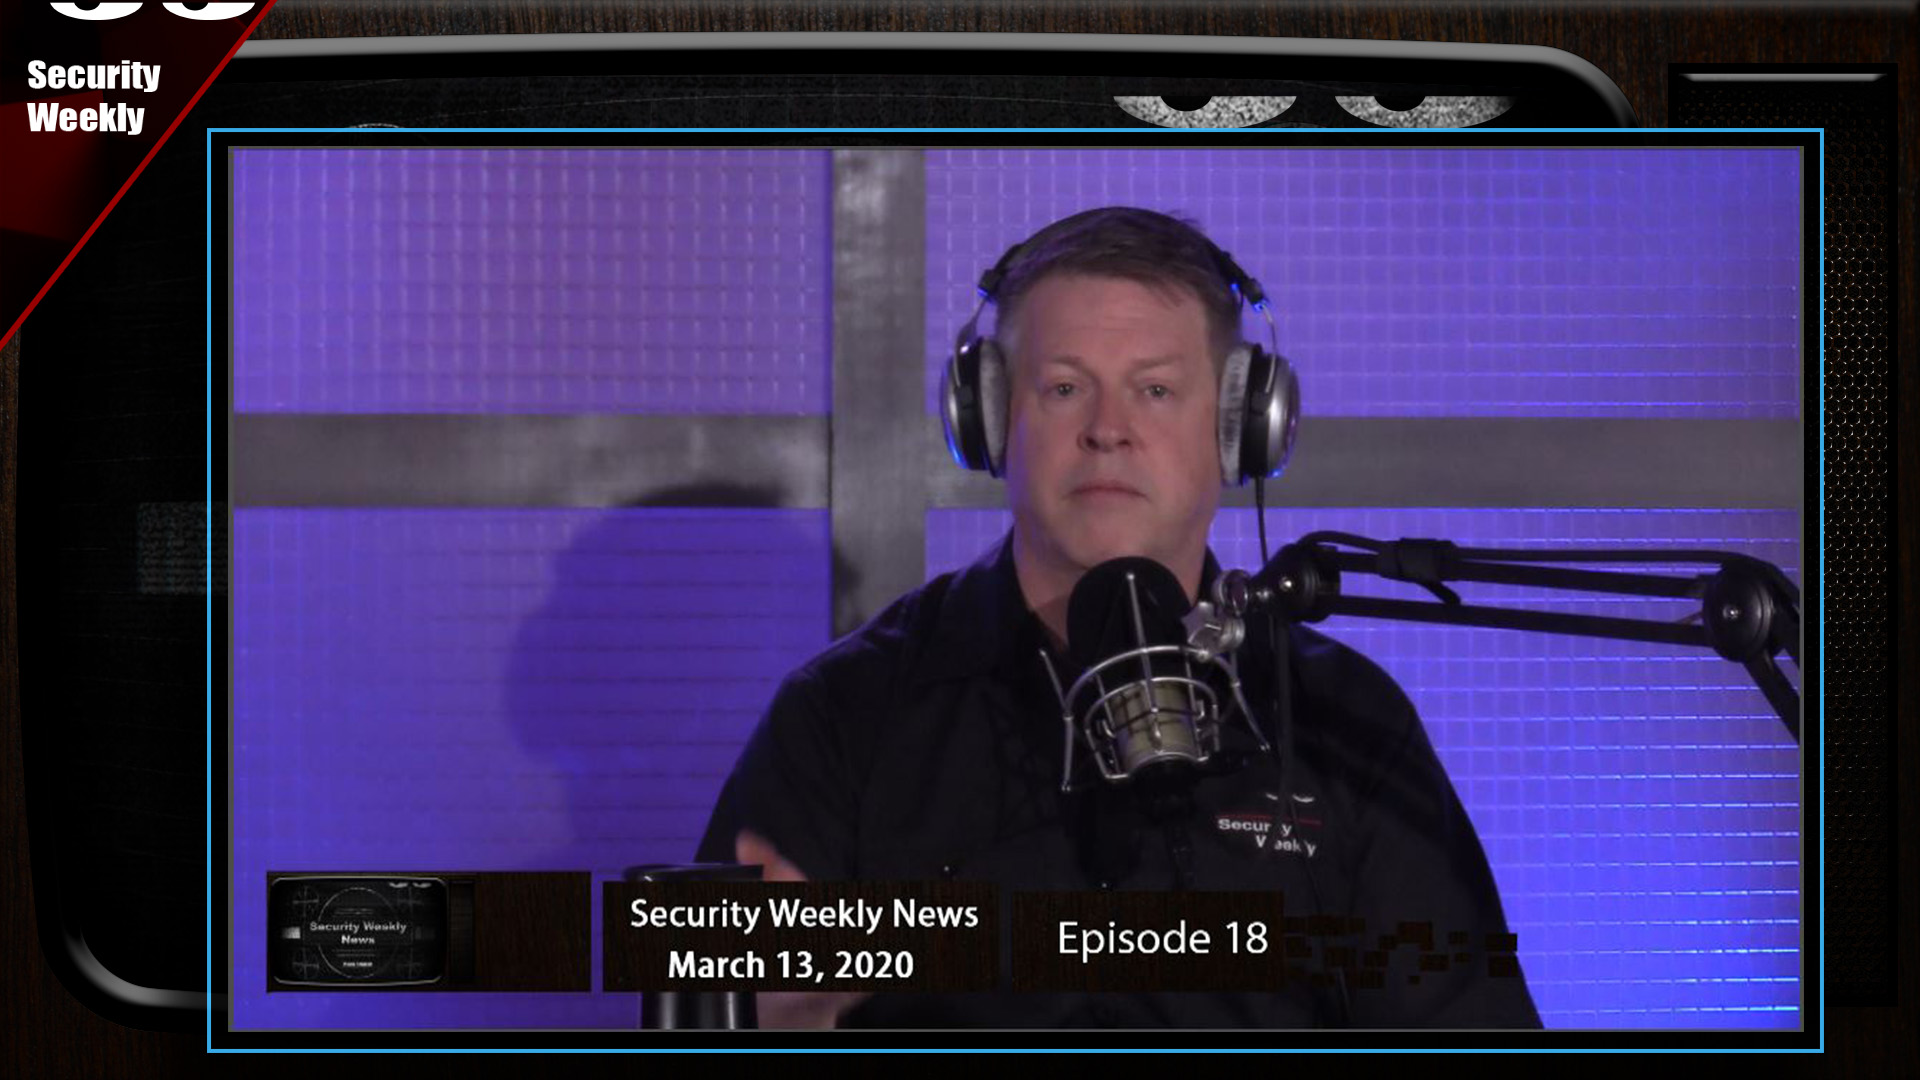 Artwork for Security Weekly News Wrap Up - SWN #18